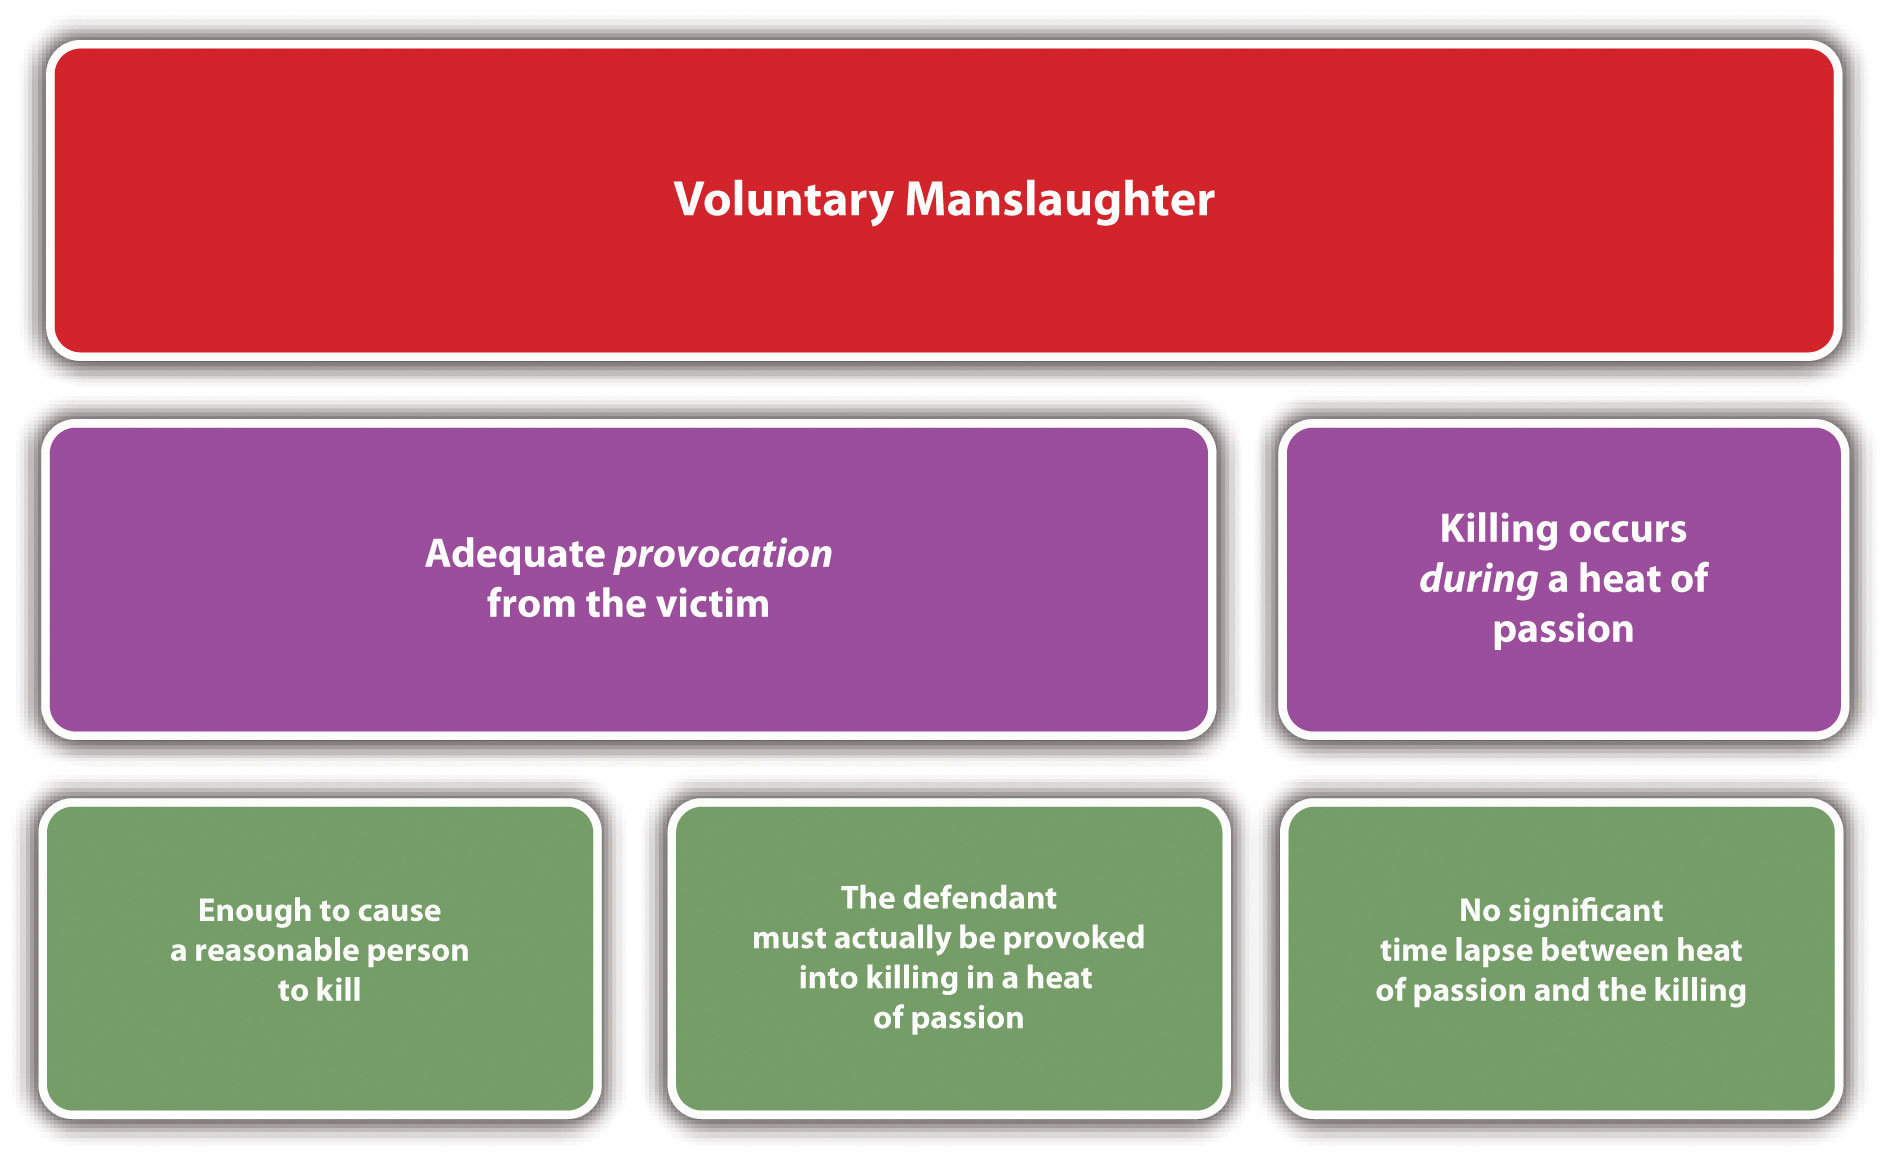 Involuntary Manslaughter: An Overview